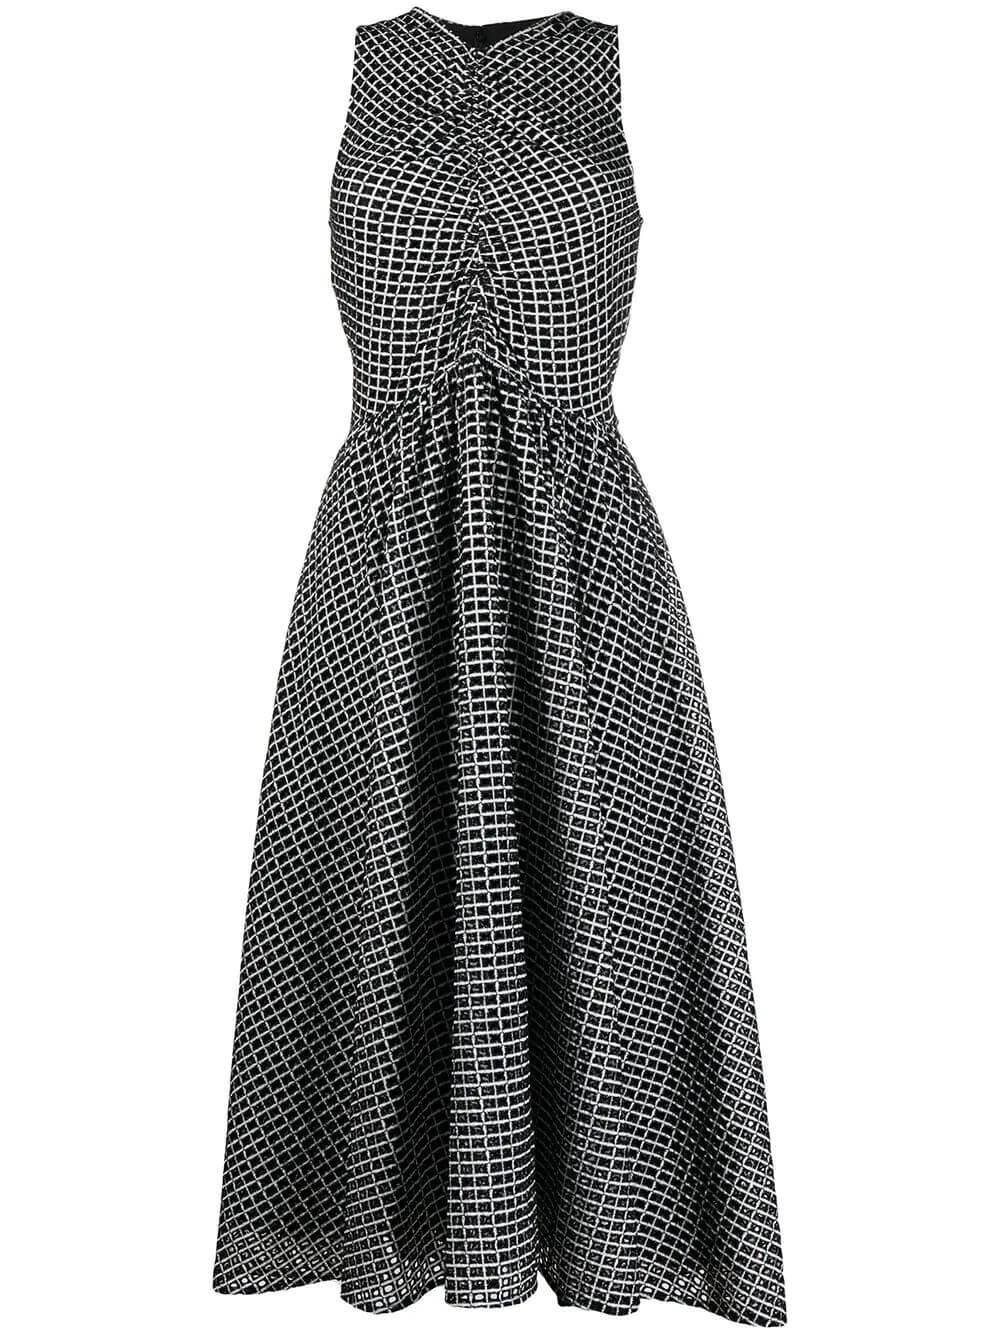 Broderie Anglaise Printed Dress